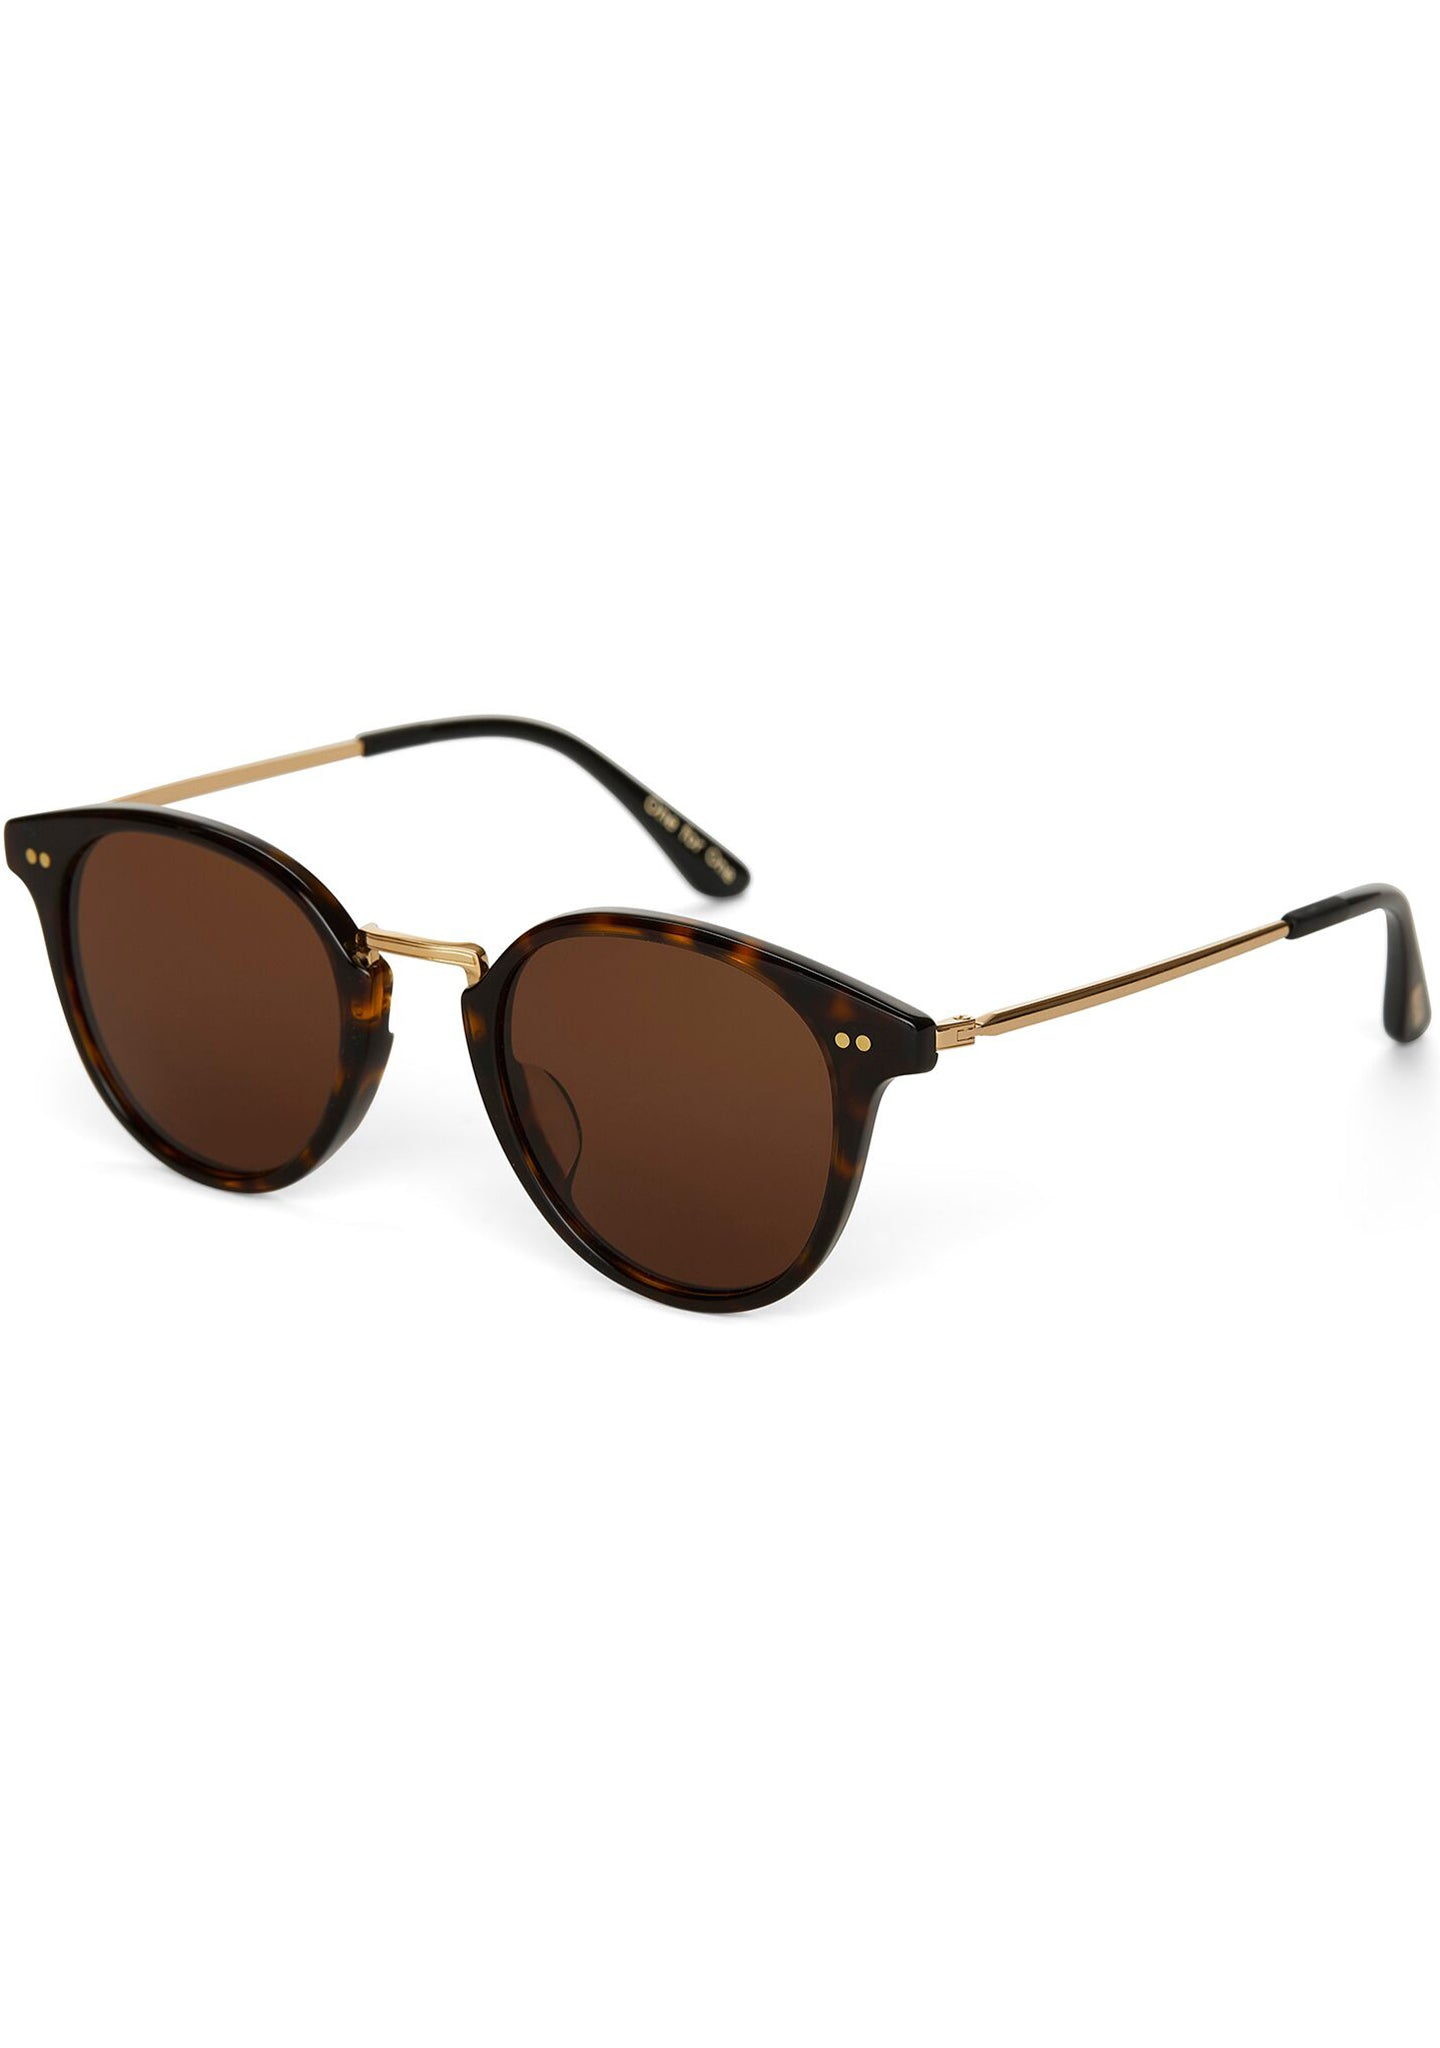 Bellini 201 Sunglasses in Gold Tortoise